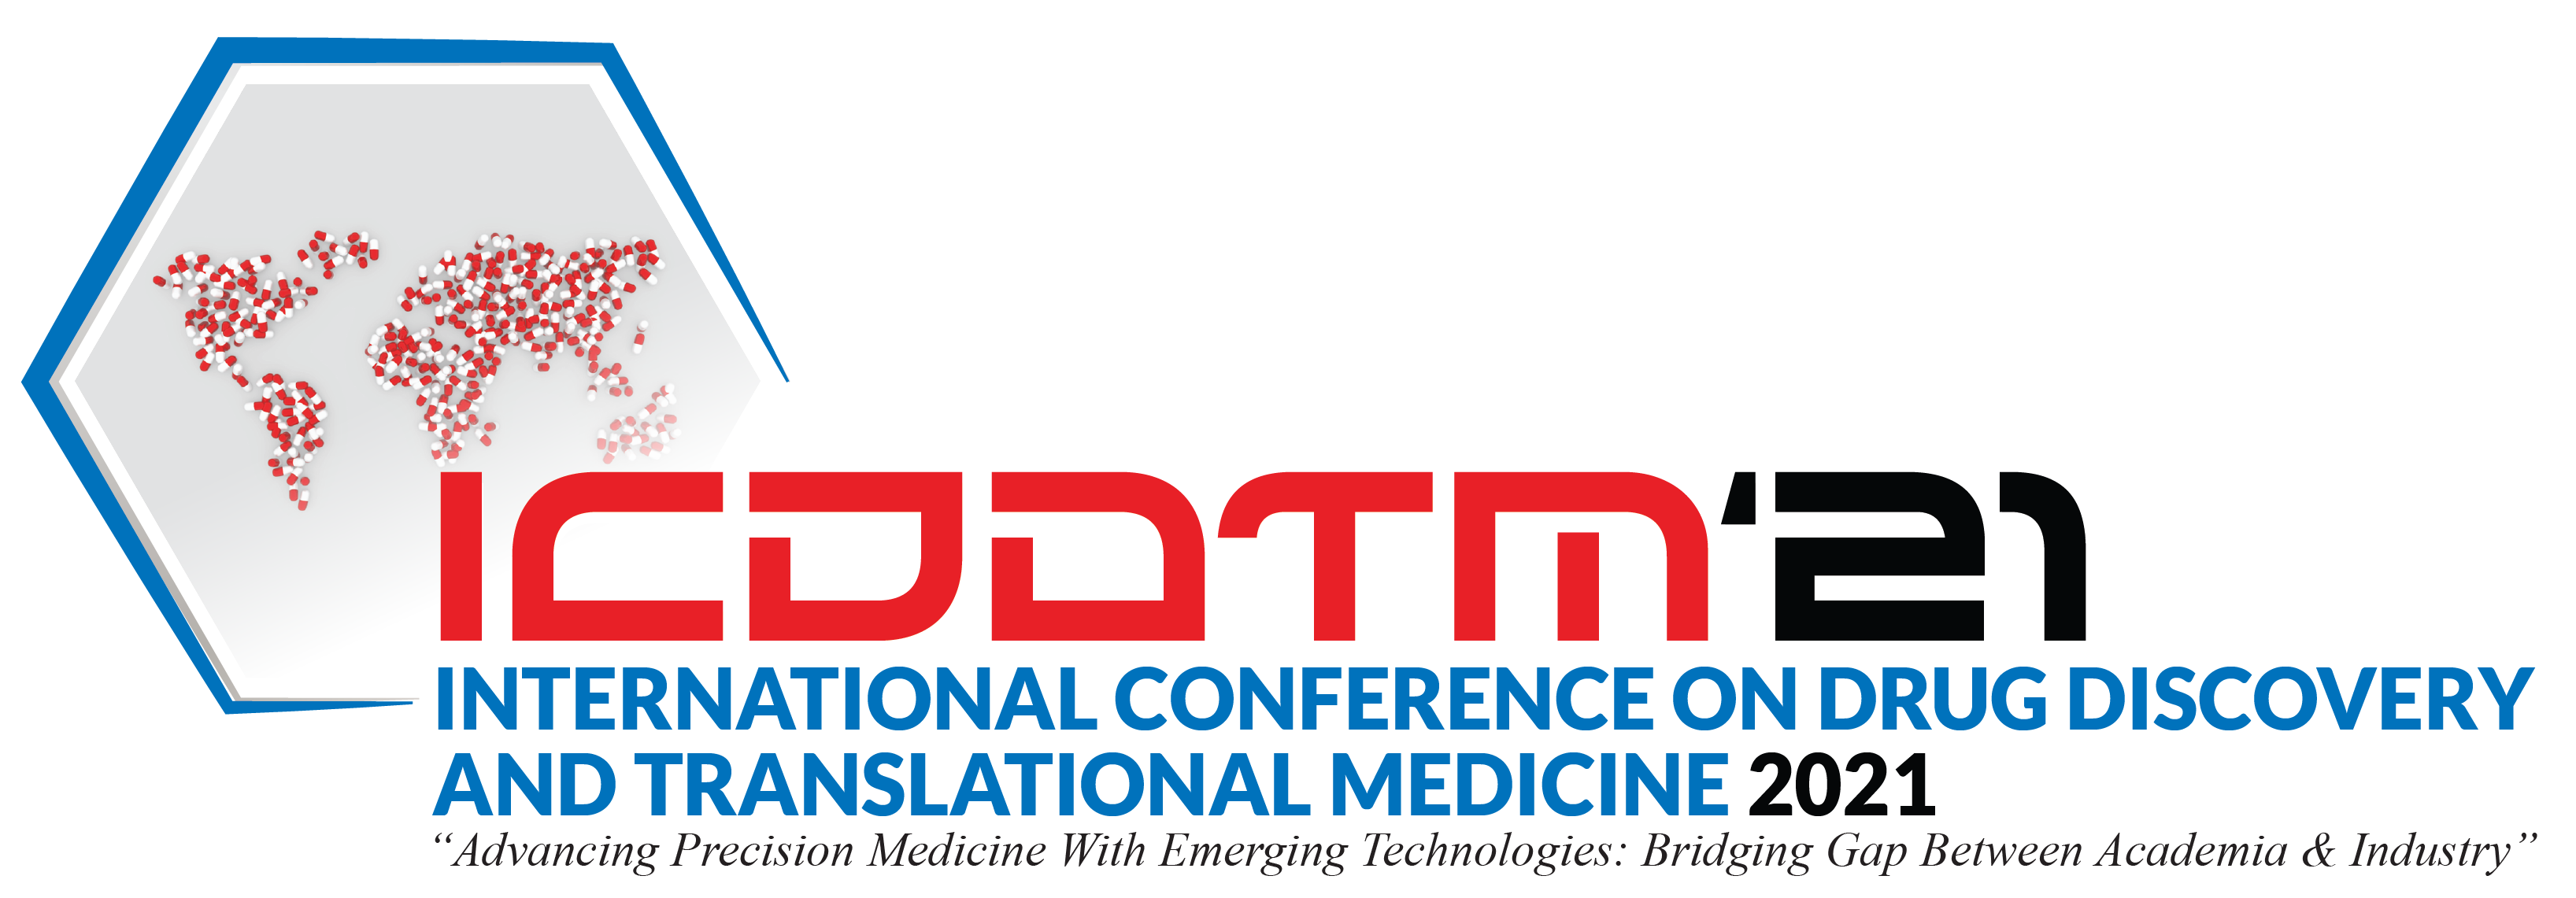 International Conference On Drug Discovery And Translational Medicine 2021 (ICDDTM21)